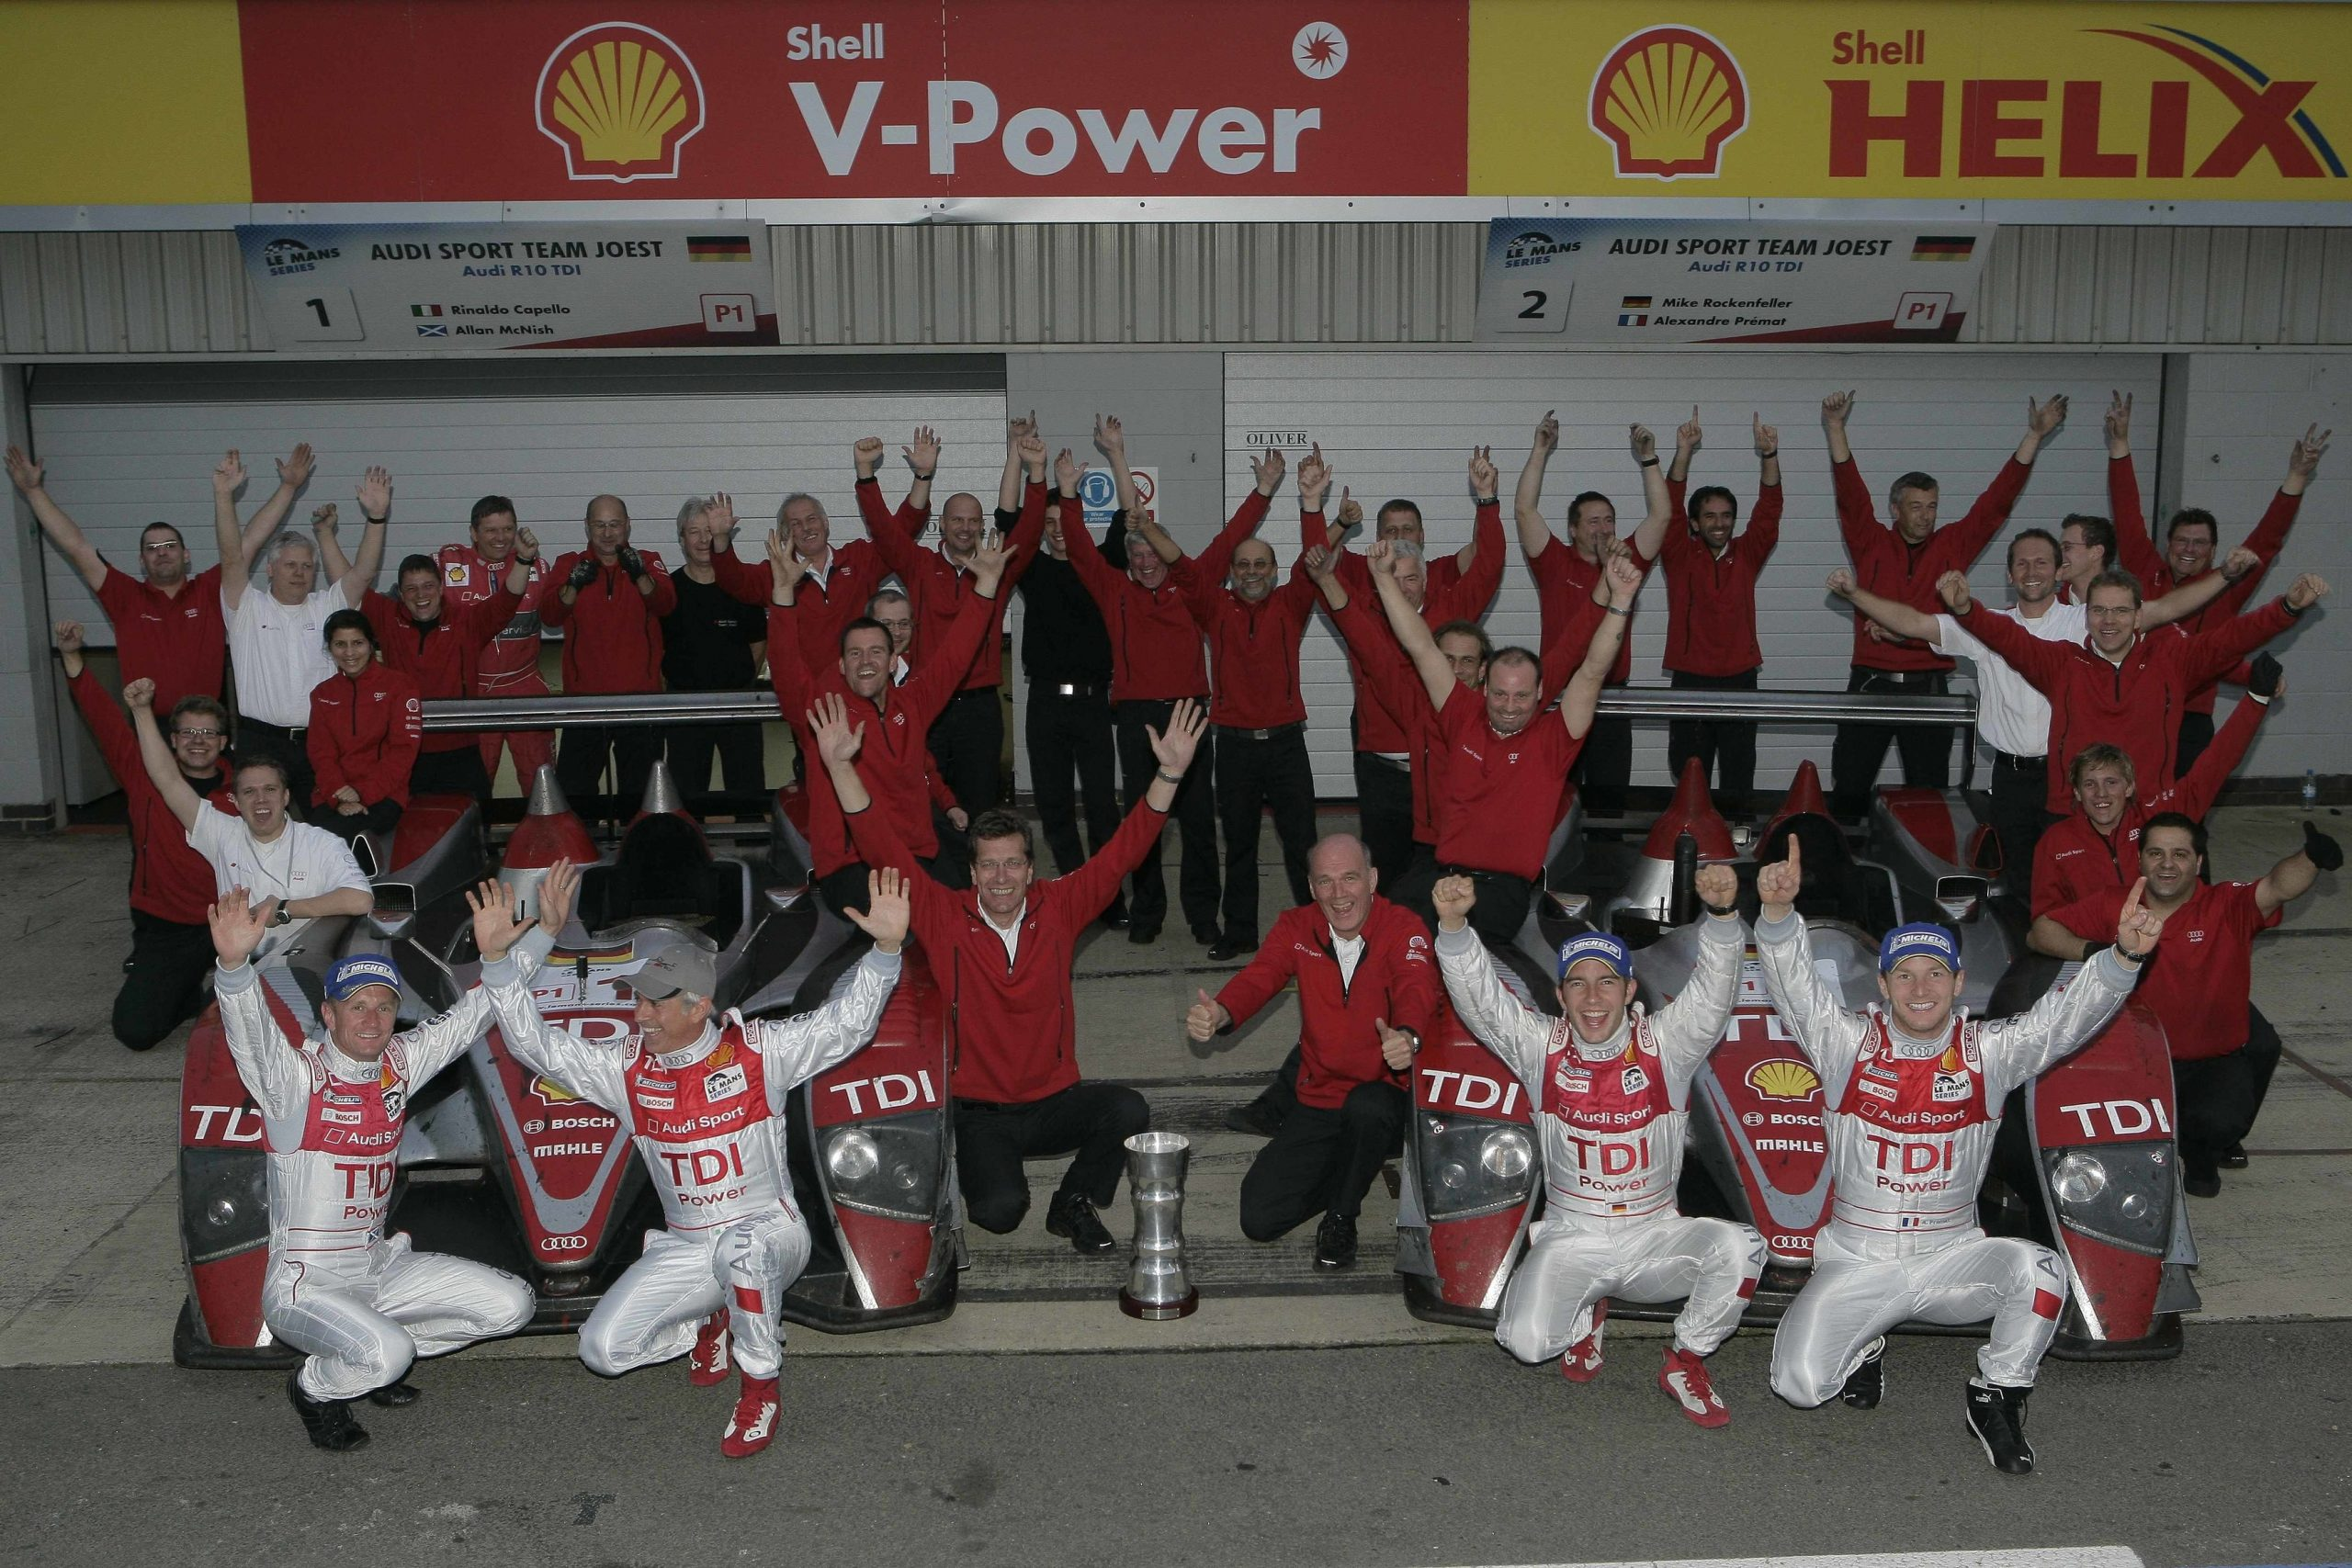 2008: Audi wins the Le Mans Series in Europe